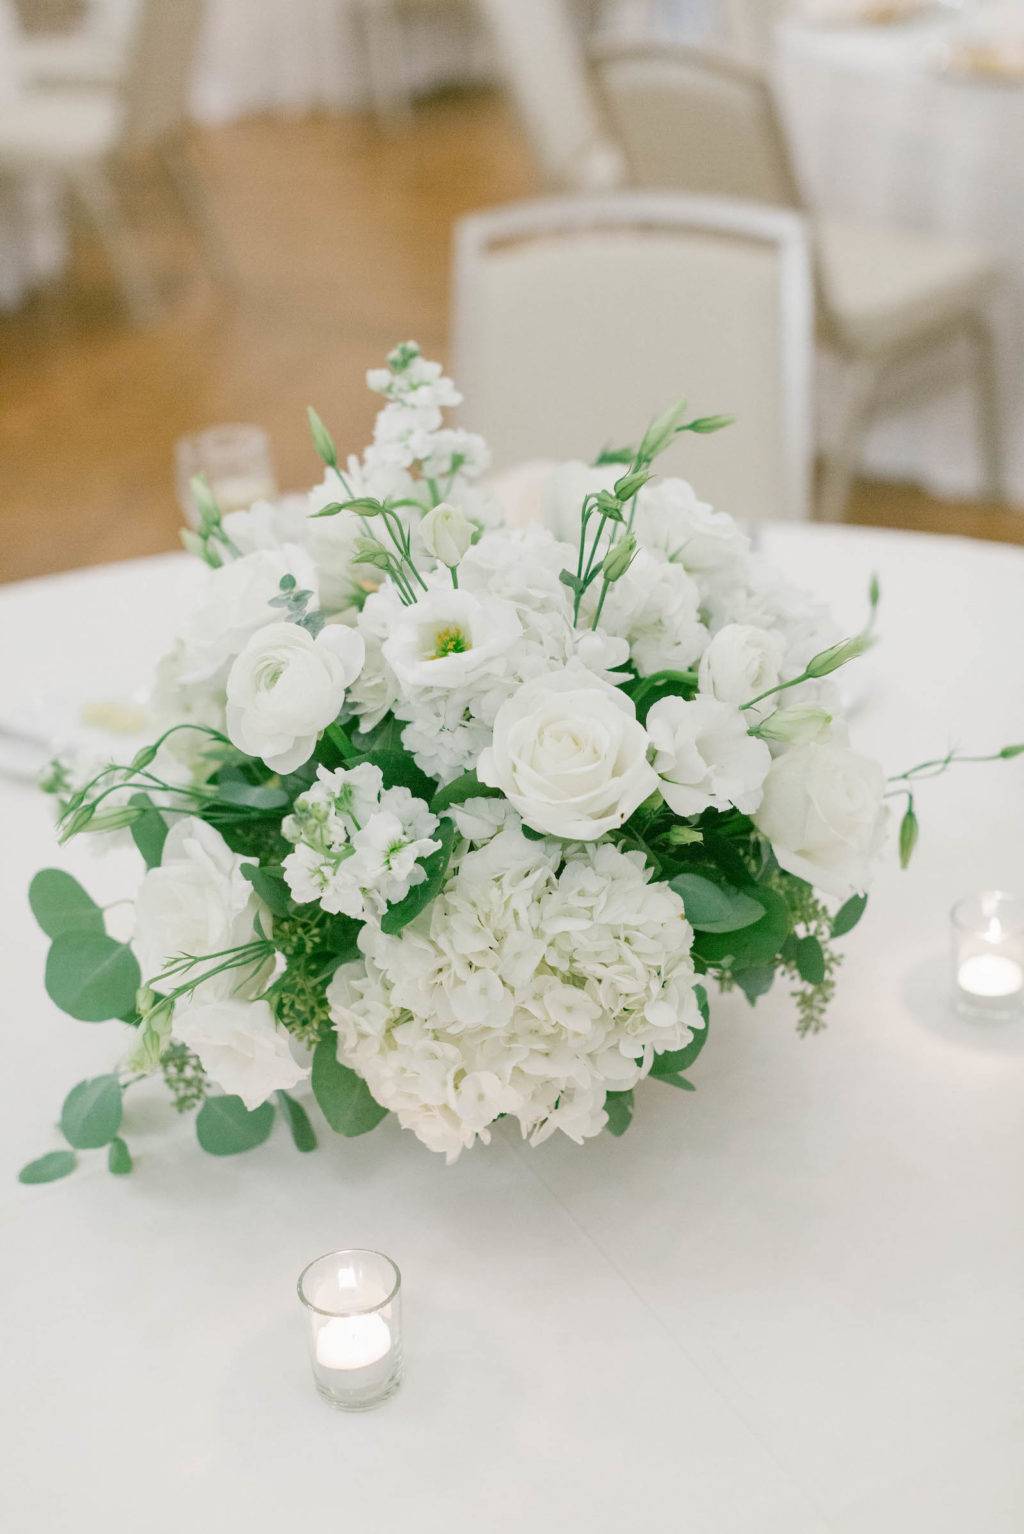 Low White Roses and Greenery Centerpieces | South Tampa Wedding Florist FH Events